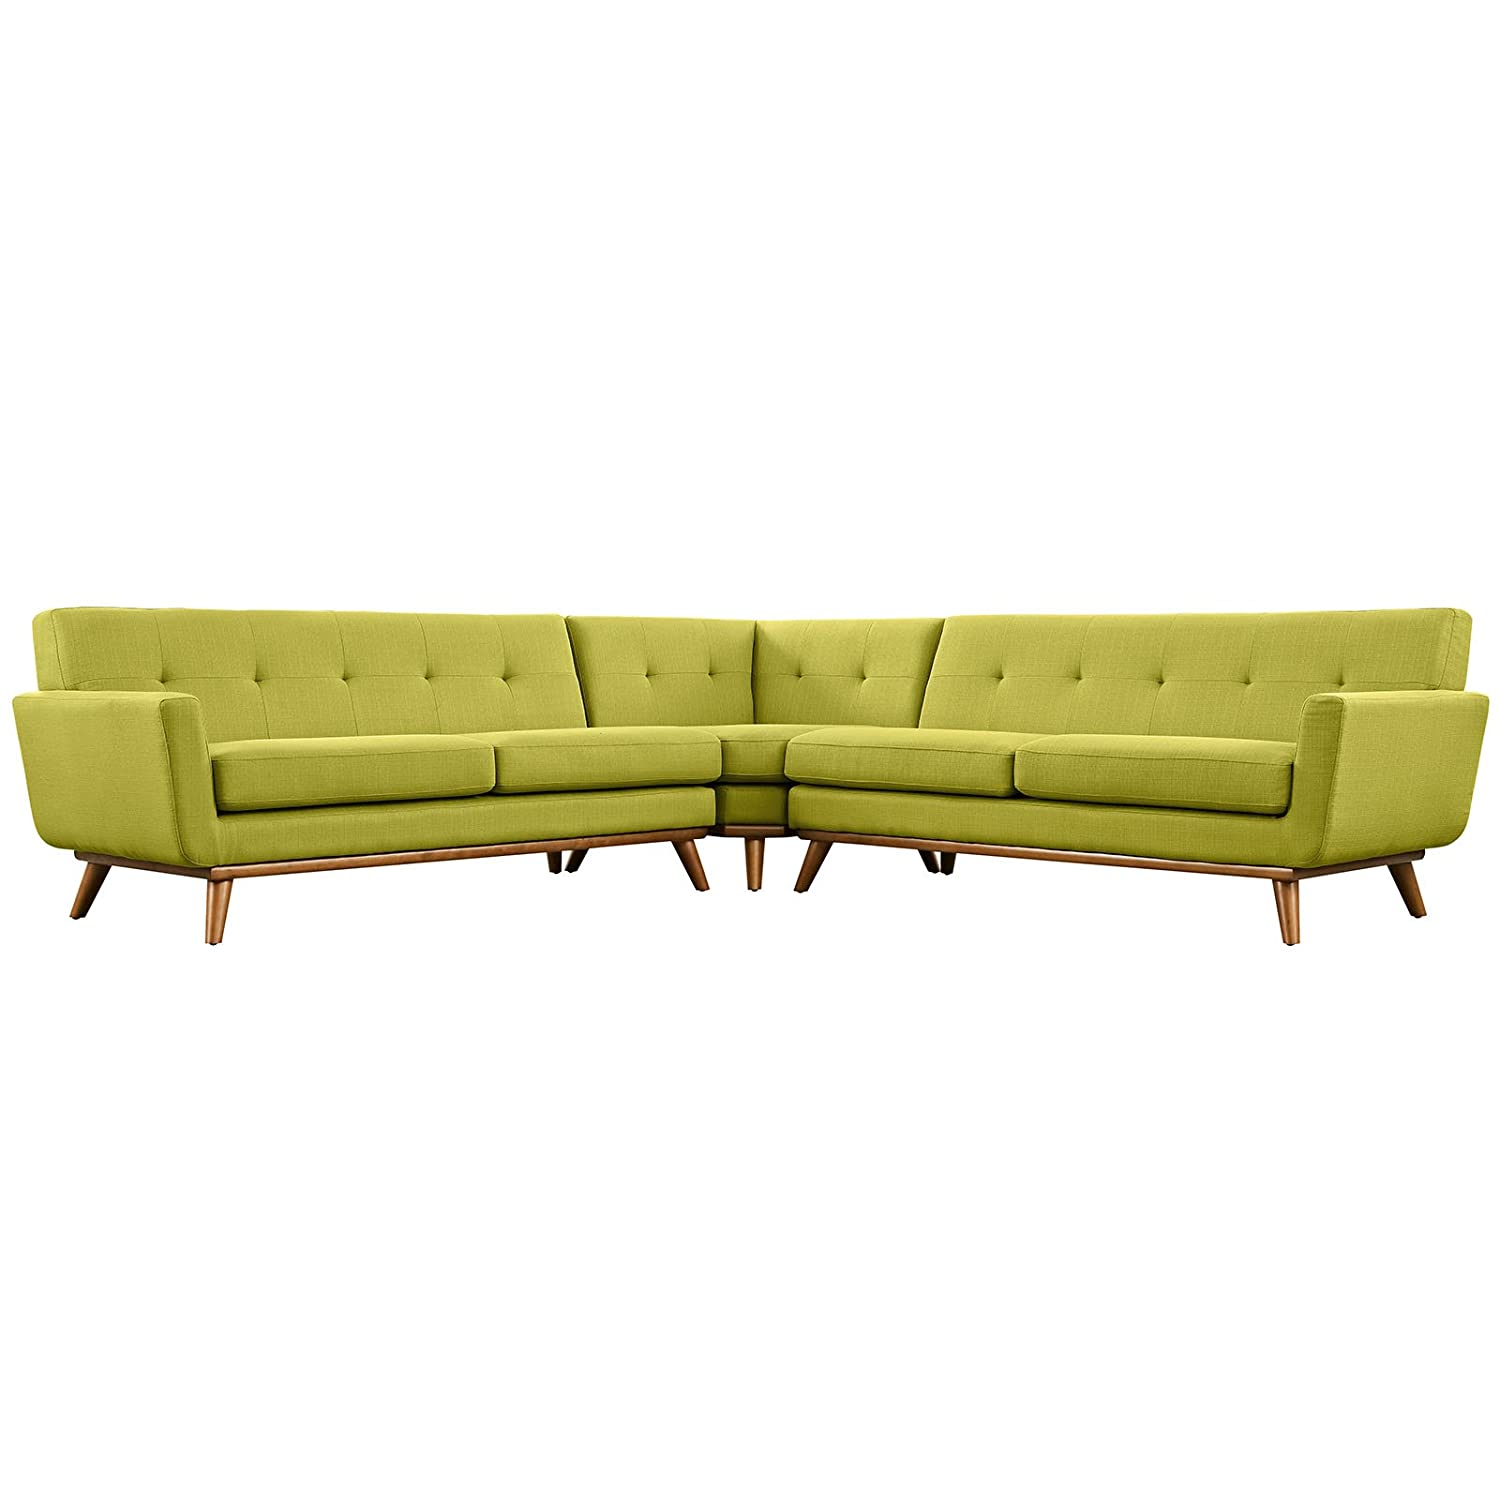 Modern Contemporary L-Shaped Sectional Sofa - Green - Fabric